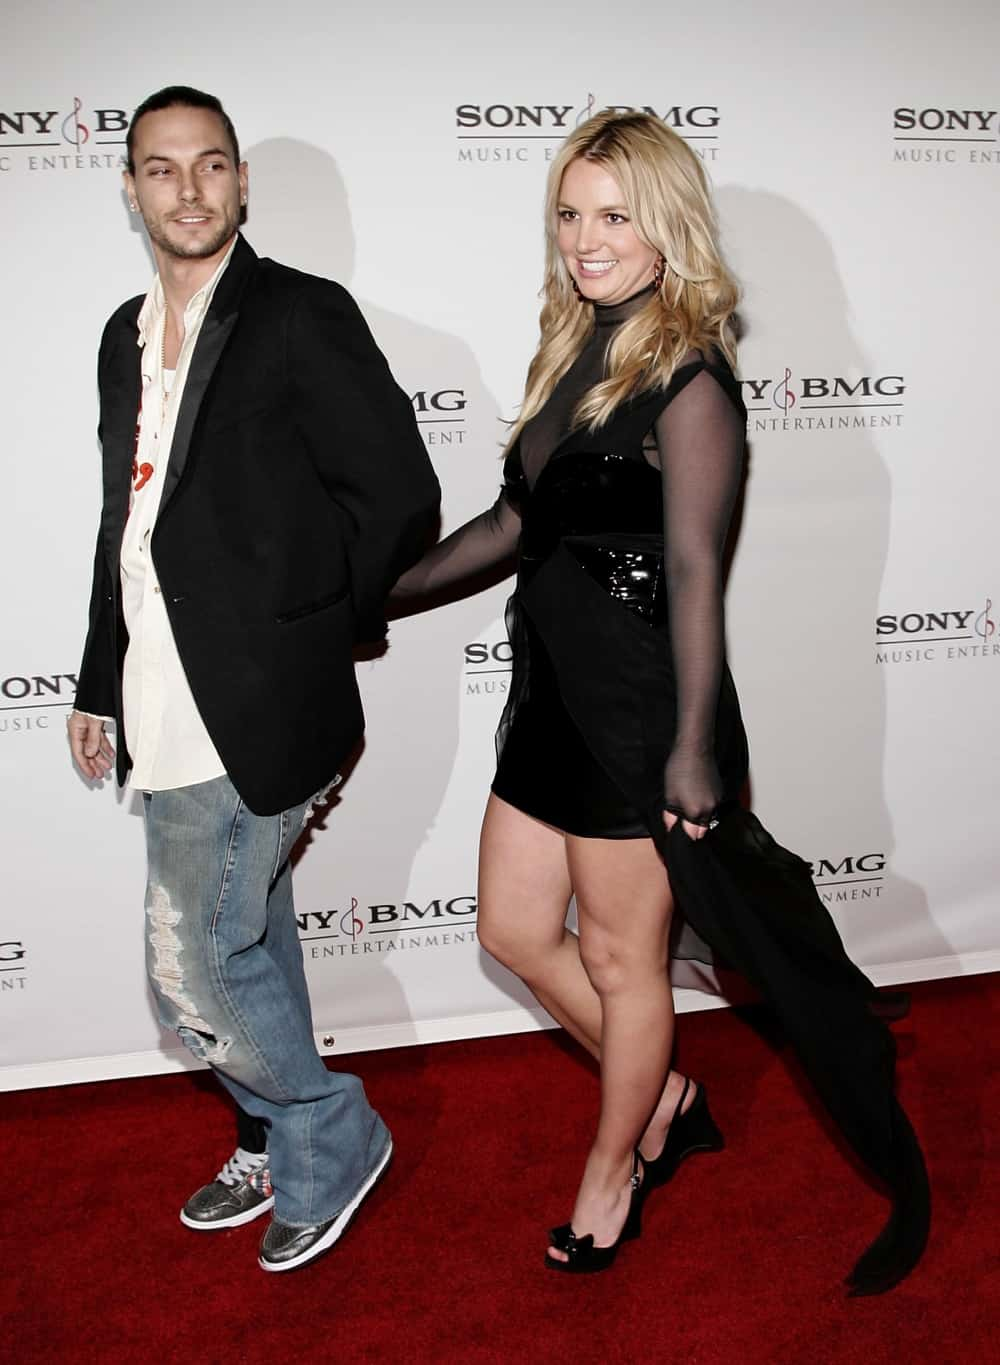 Britney Spears and Kevin Federline SONY BMG Grammy Party - Arrivals